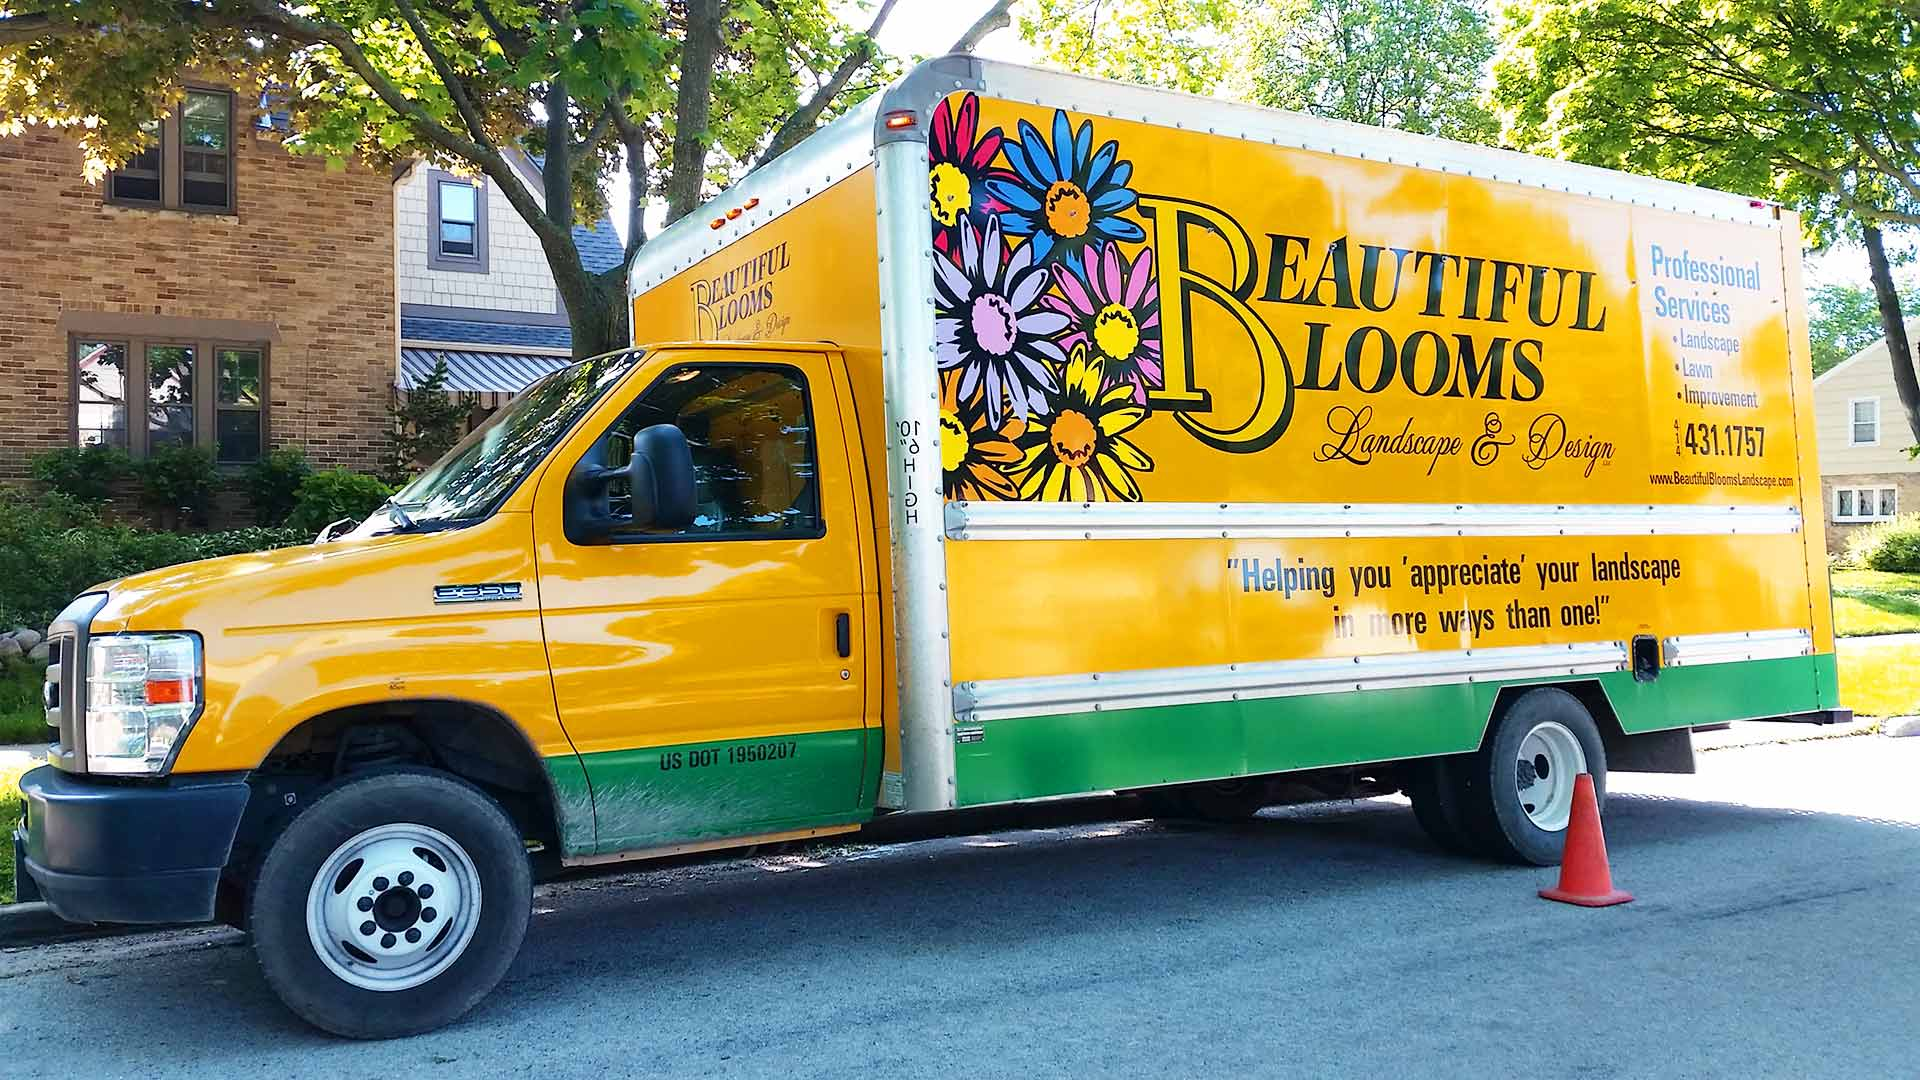 Beautiful Blooms, LLC has vehicles that are marked with the company's logo and colors when they arrive at our clients' homes.